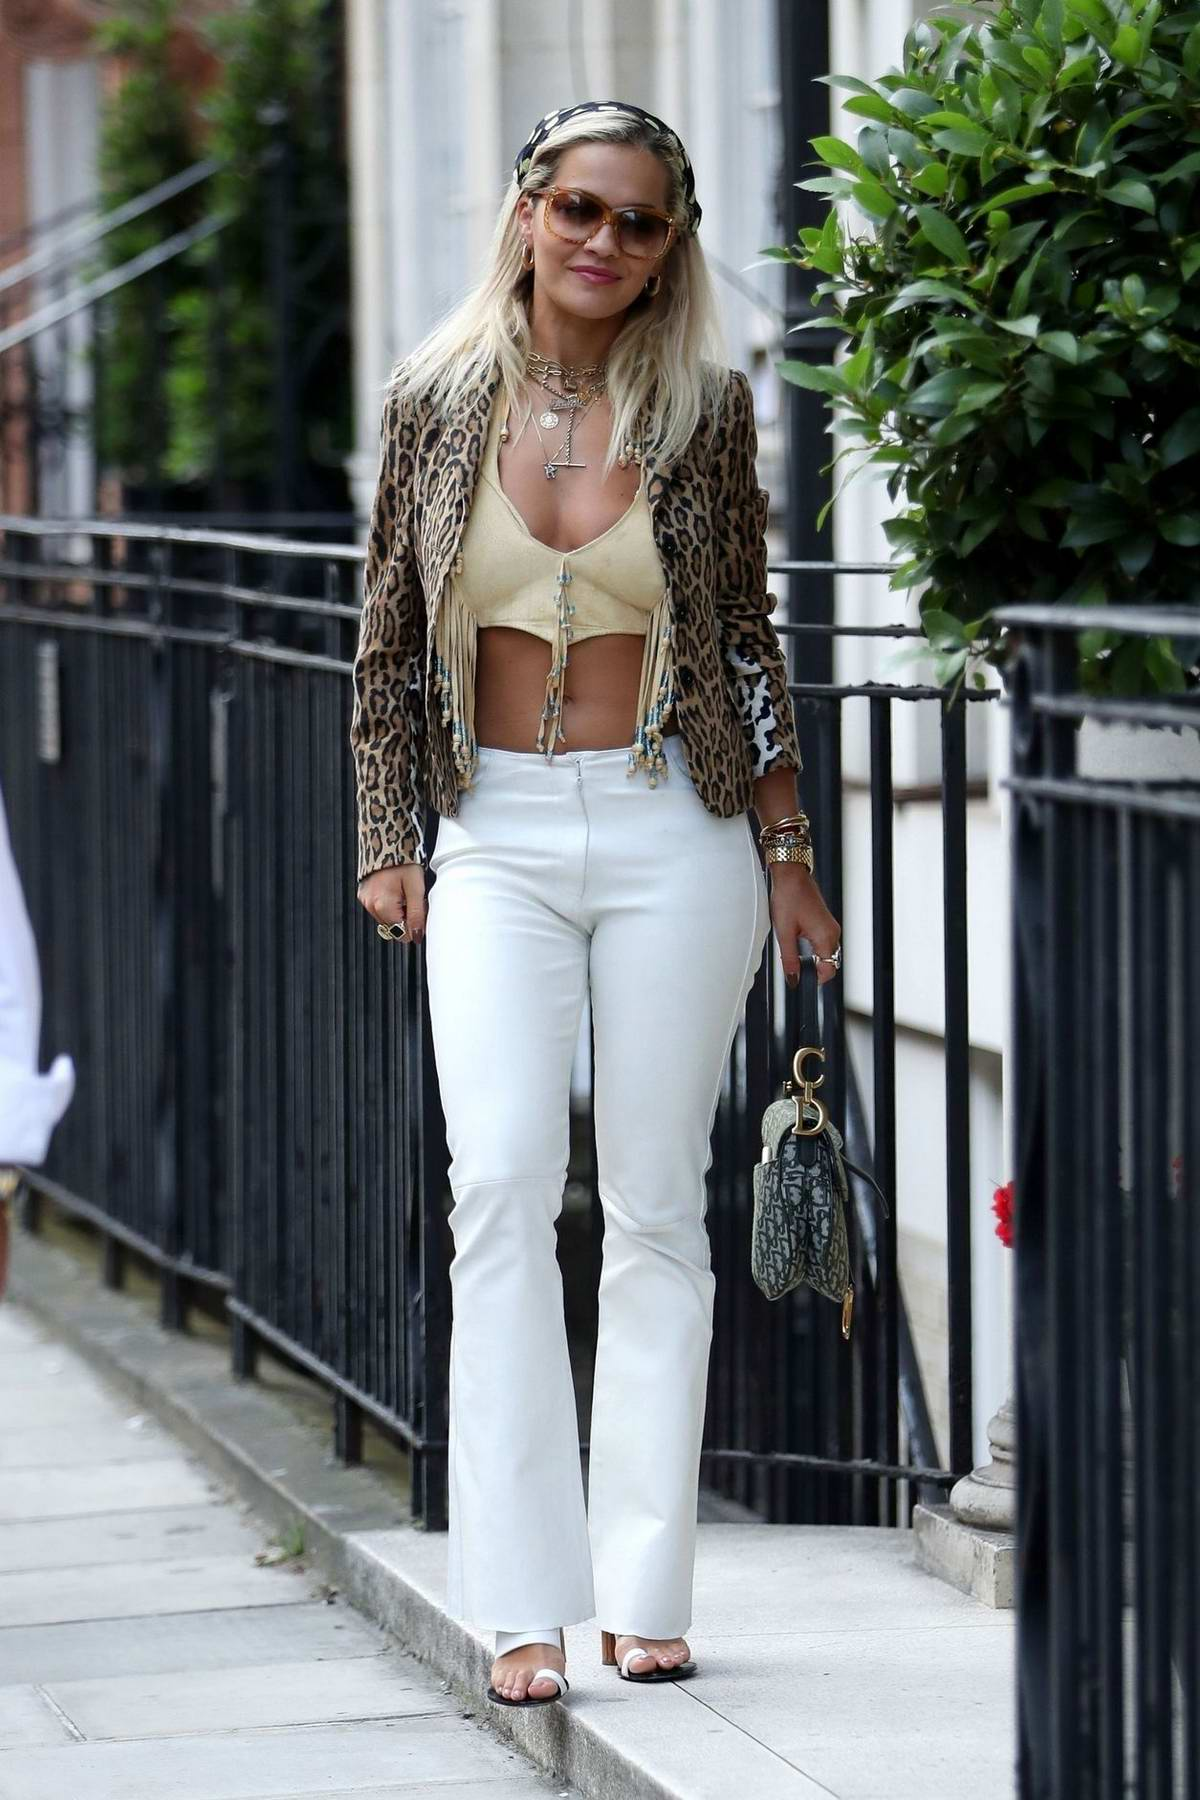 Rita Ora wears a yellow crop top, leopard print jacket and white trousers while heading to Scott's in London, UK